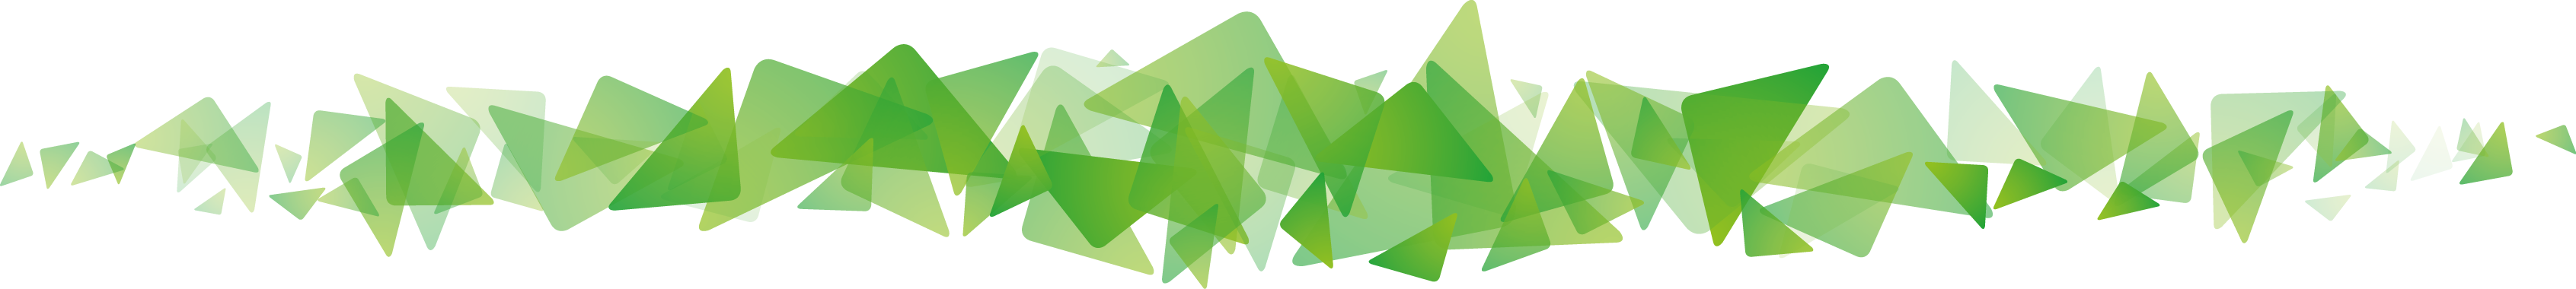 green lines png 1